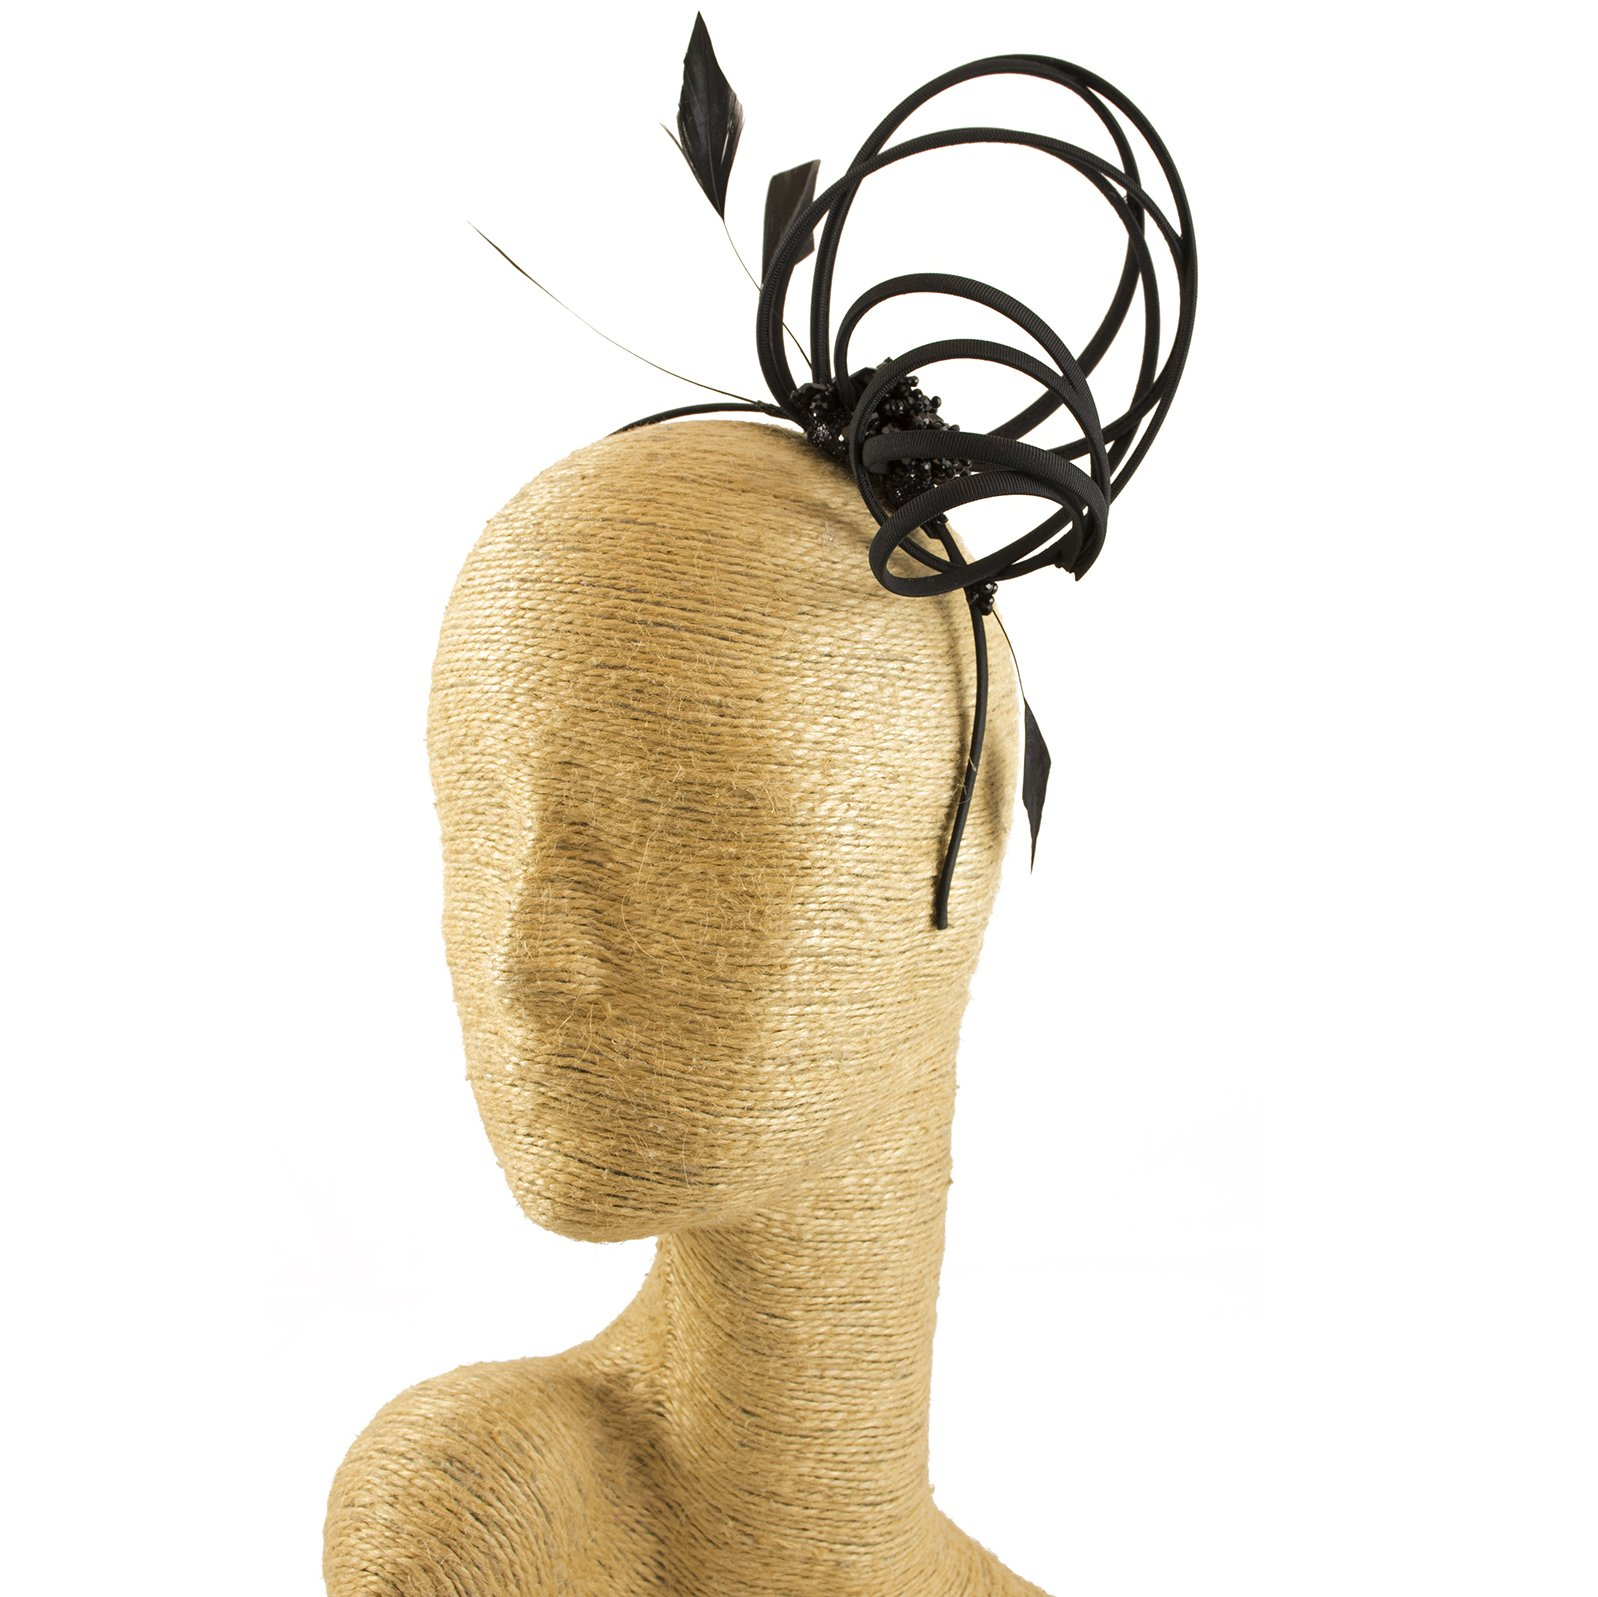 Black Fascinator, Feather, Headbands, Millinery, Worldwide Free Shipment, Delivery in 2 Days, Head wrap, Bohemian Accessories, Headpieces, Head dress, Kentucky Derby Hat, Gift Box